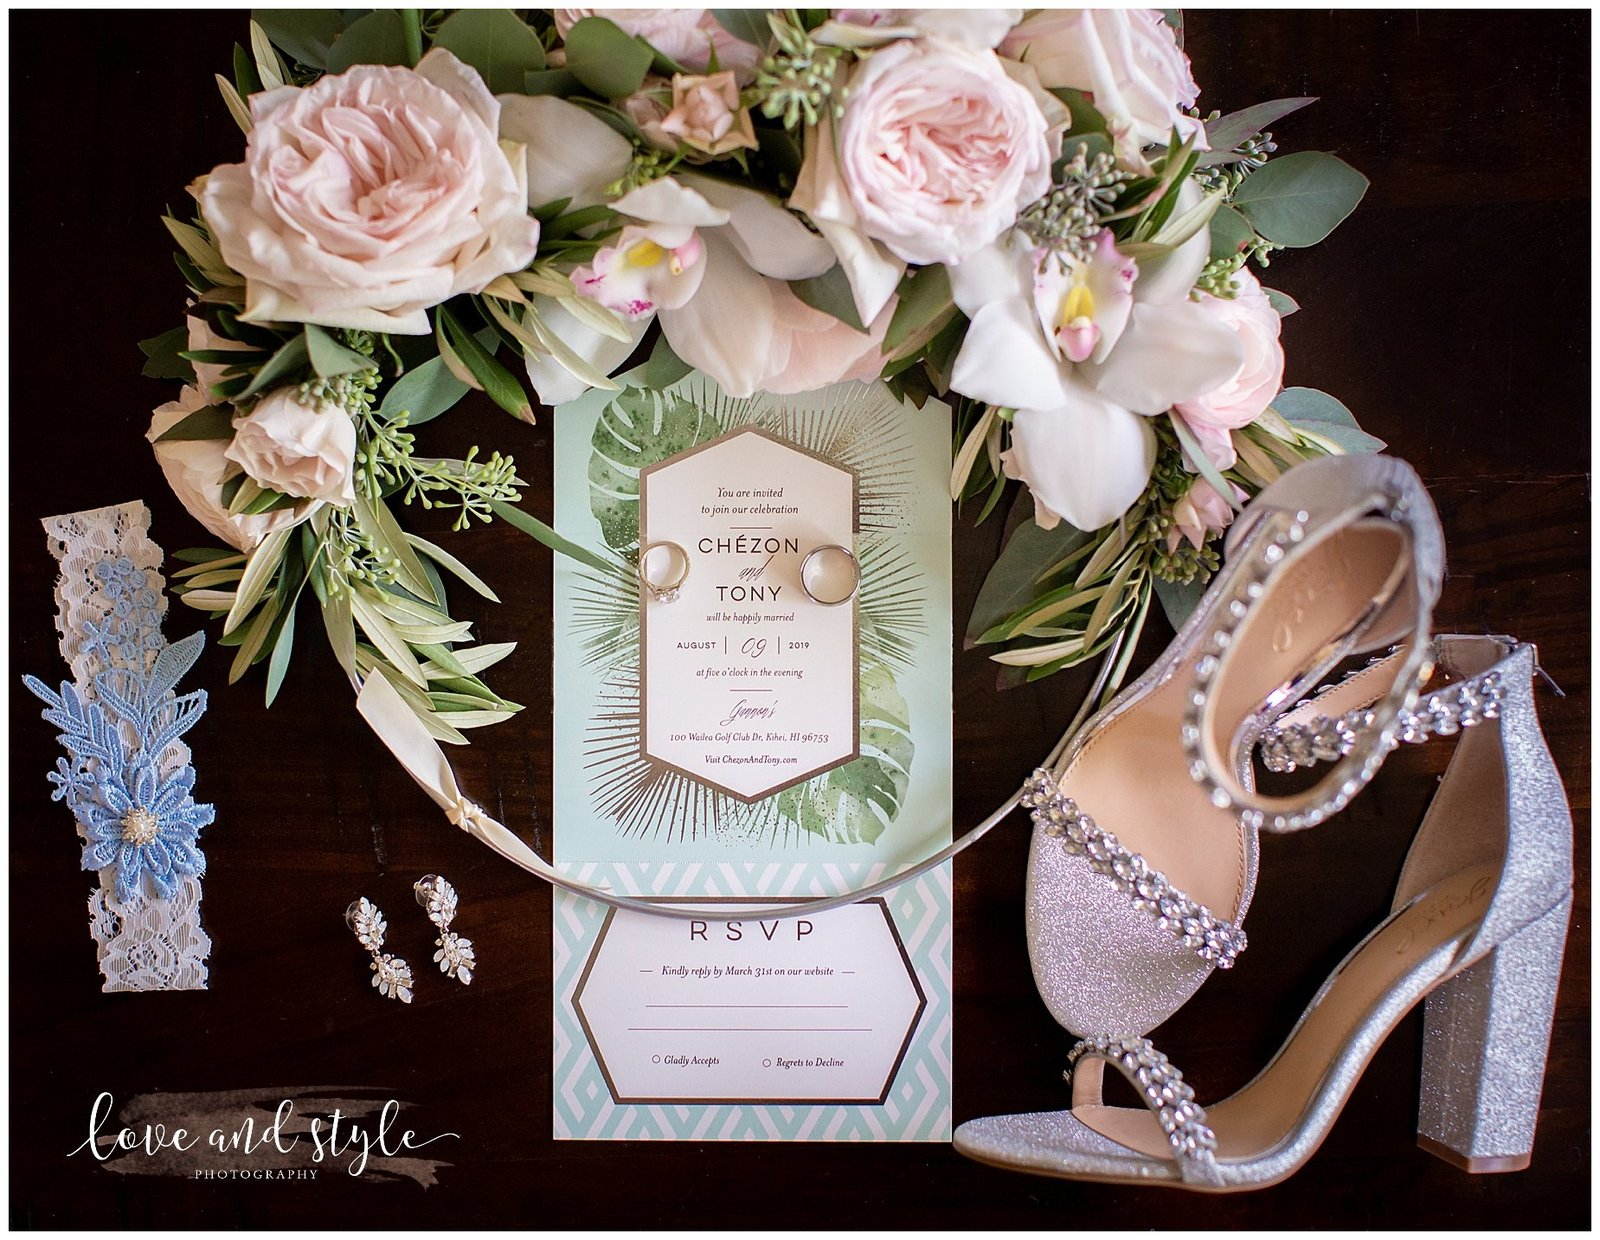 Detail shot of wedding invitation with shoes and jewelry